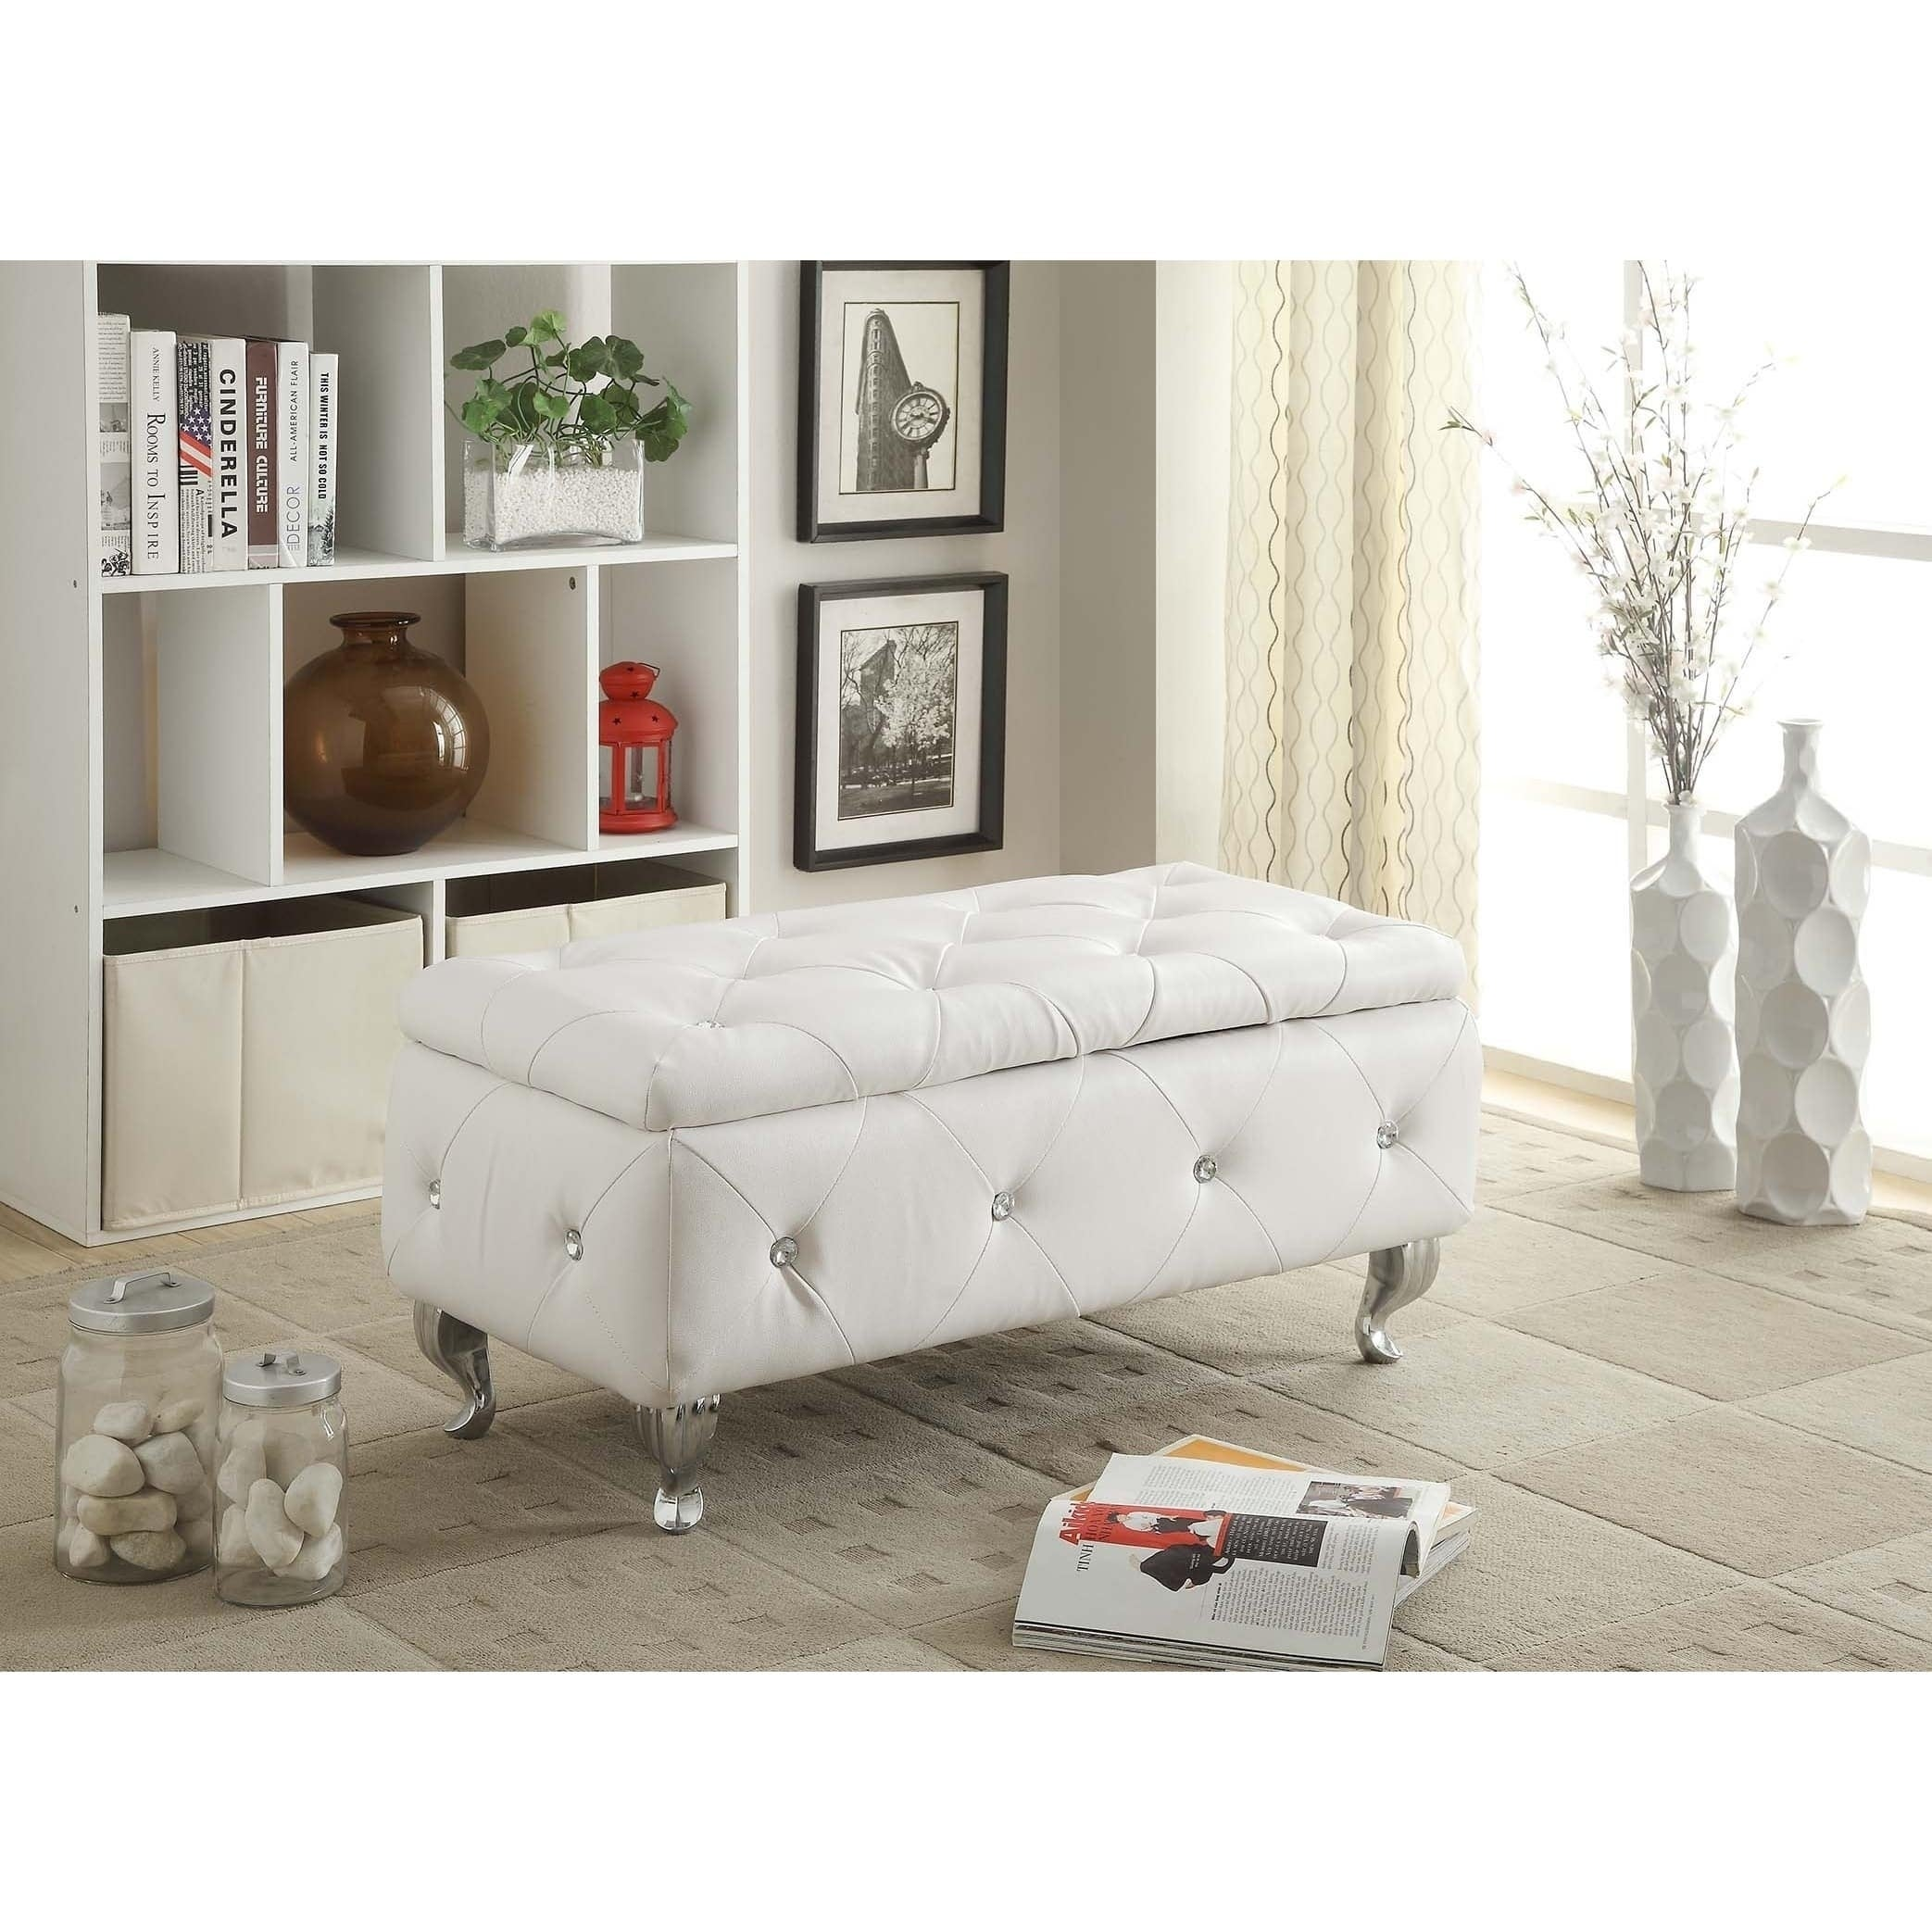 Glam Leather Upholstered Tufted Storage Bench Silver Seat Bedroom ...